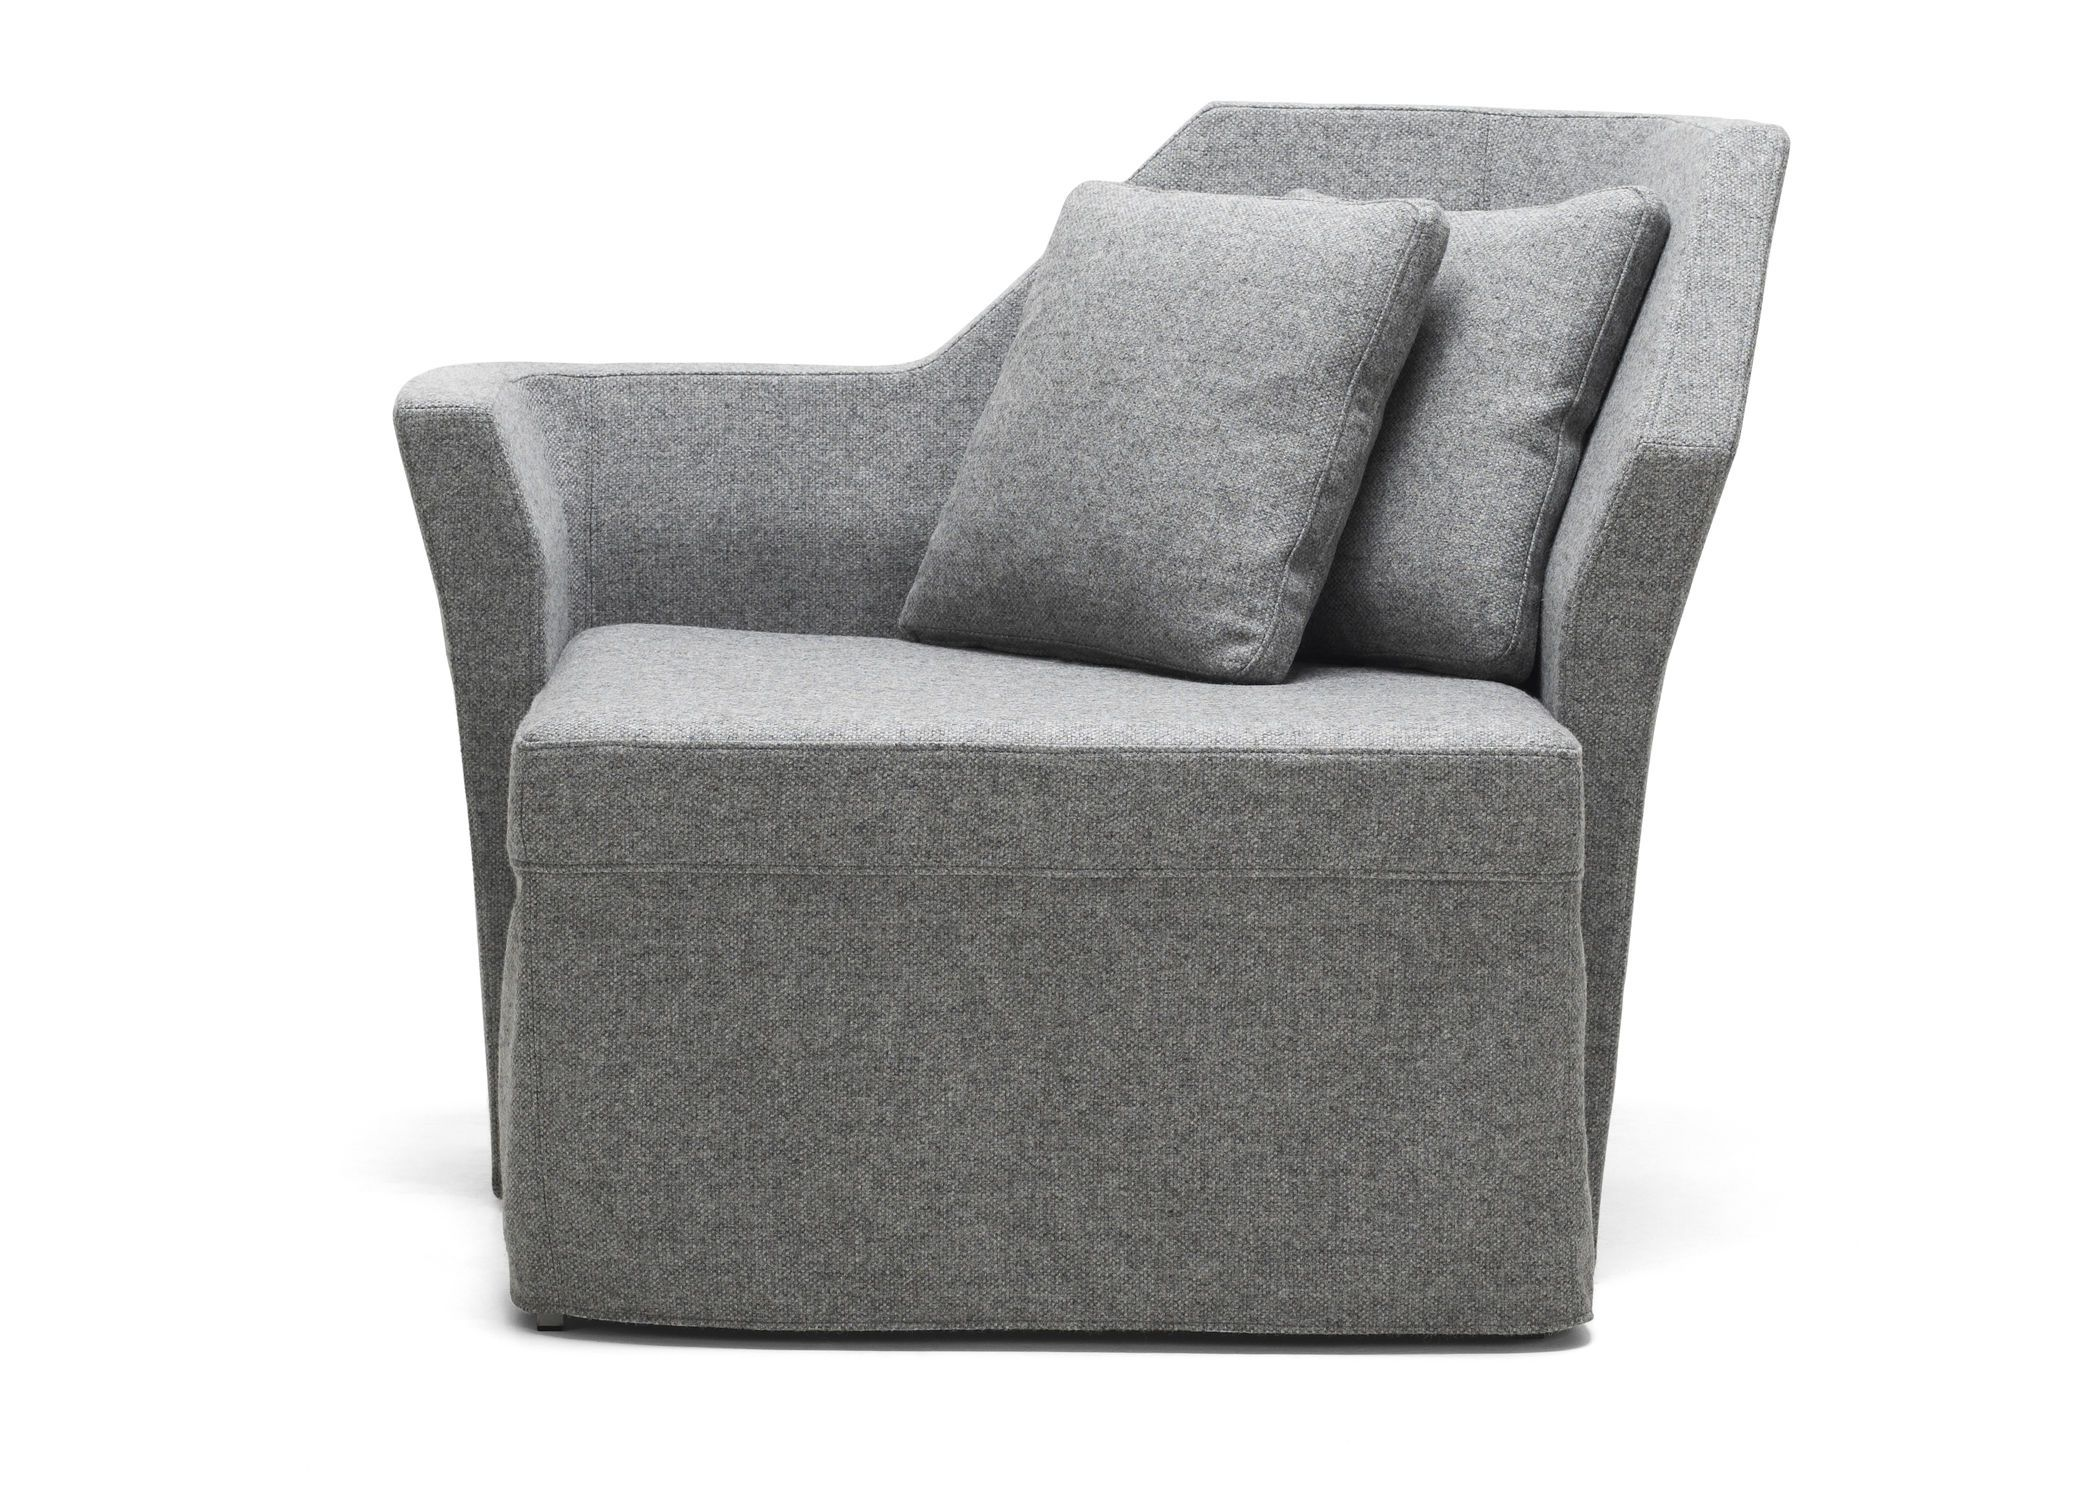 Lovely Gray Fabric Single Arm Chair Bed Modern Design In Teal .